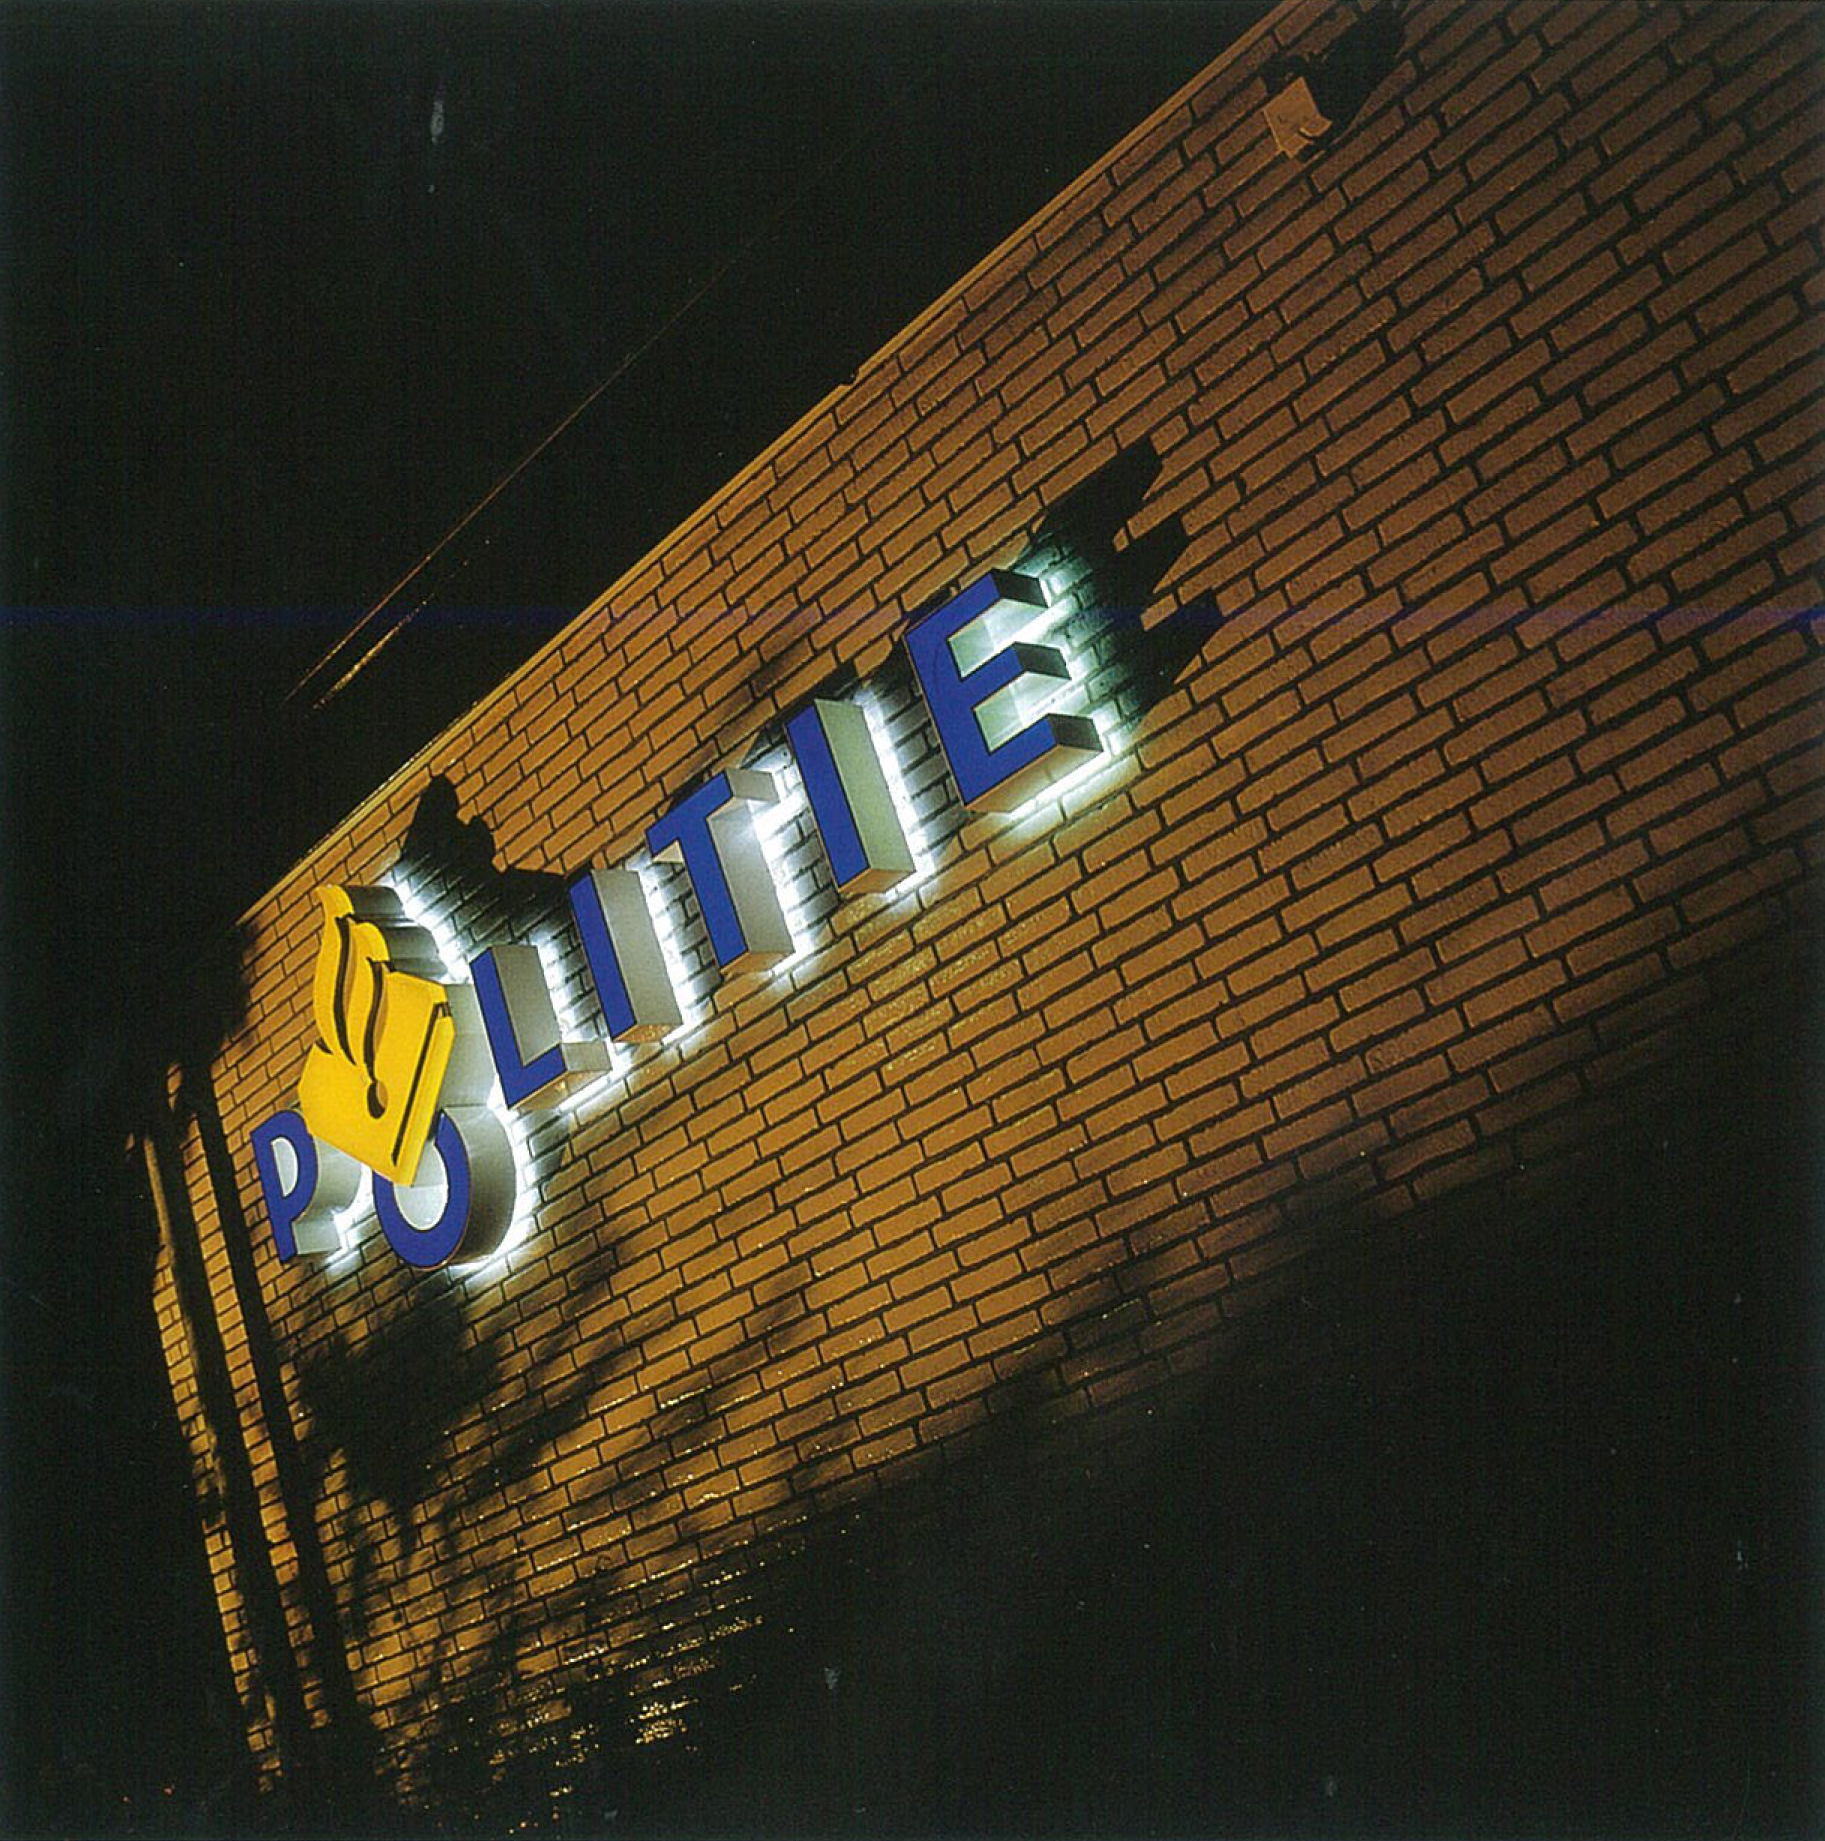 StudioDumbar_Dutch Police_Sign Scan.jpg